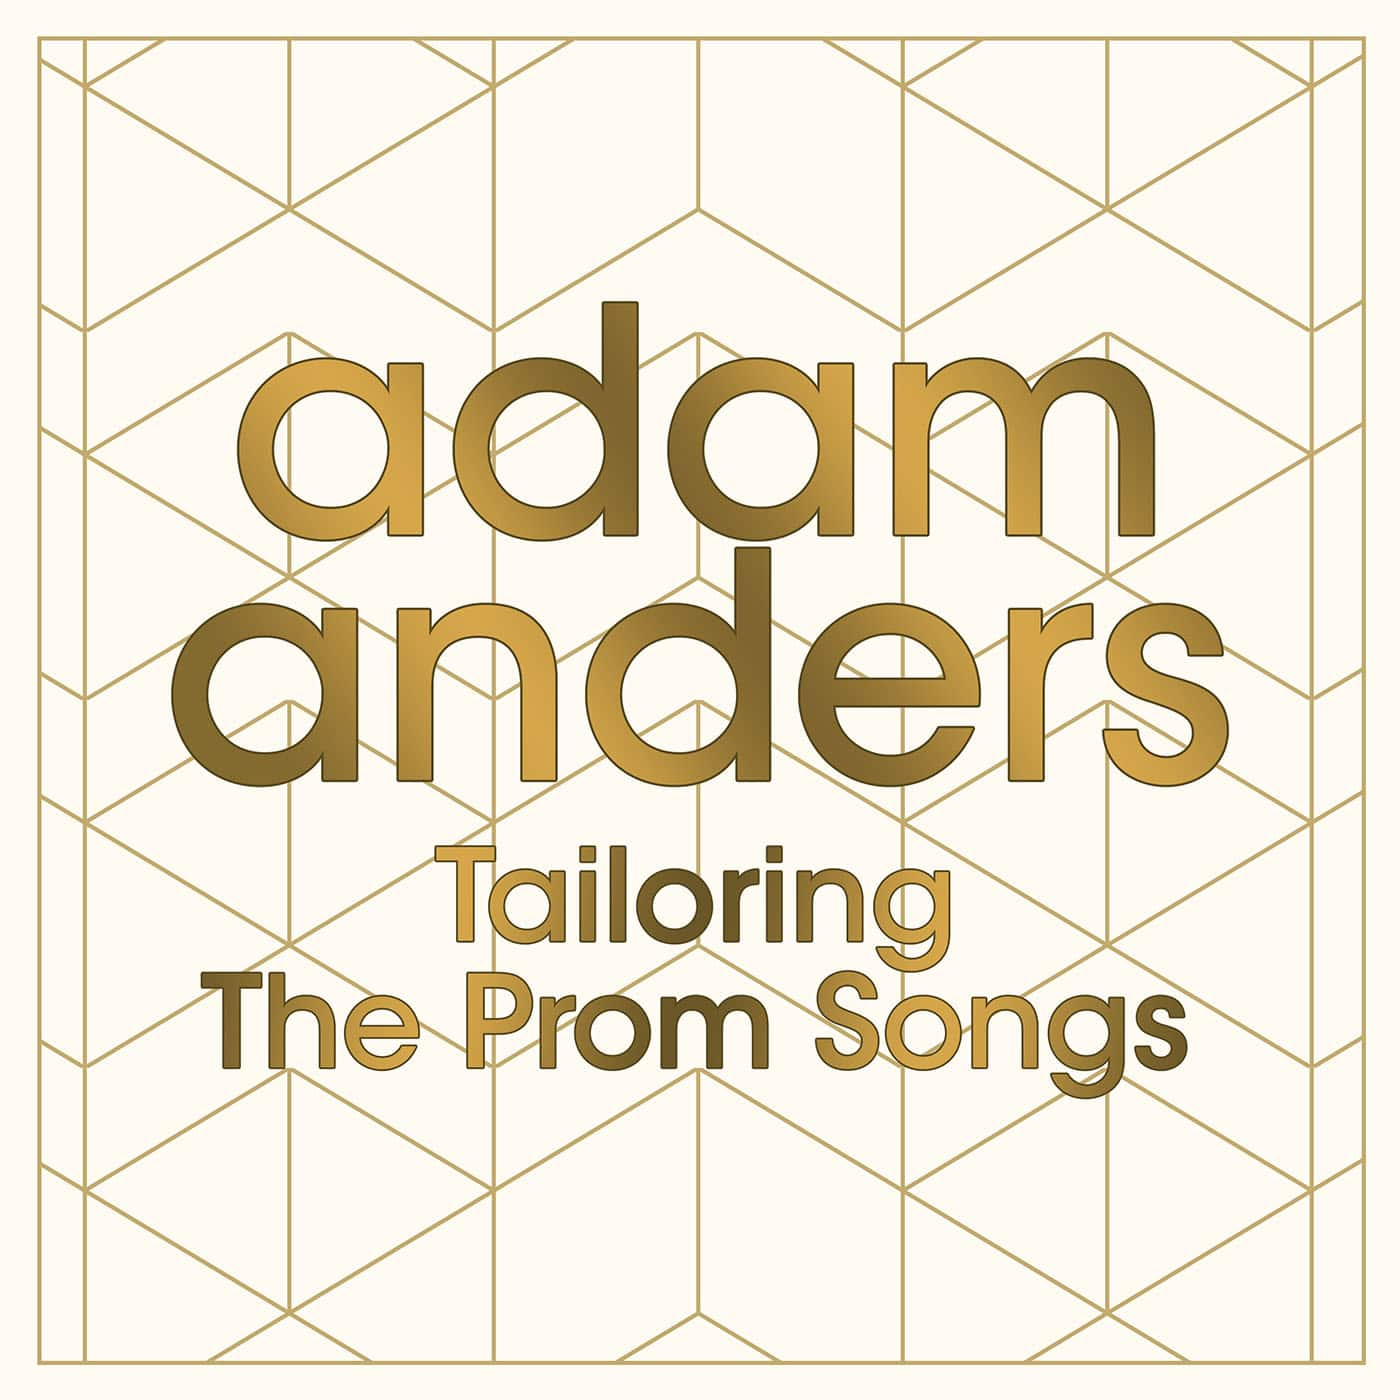 Tailoring The Prom Songs